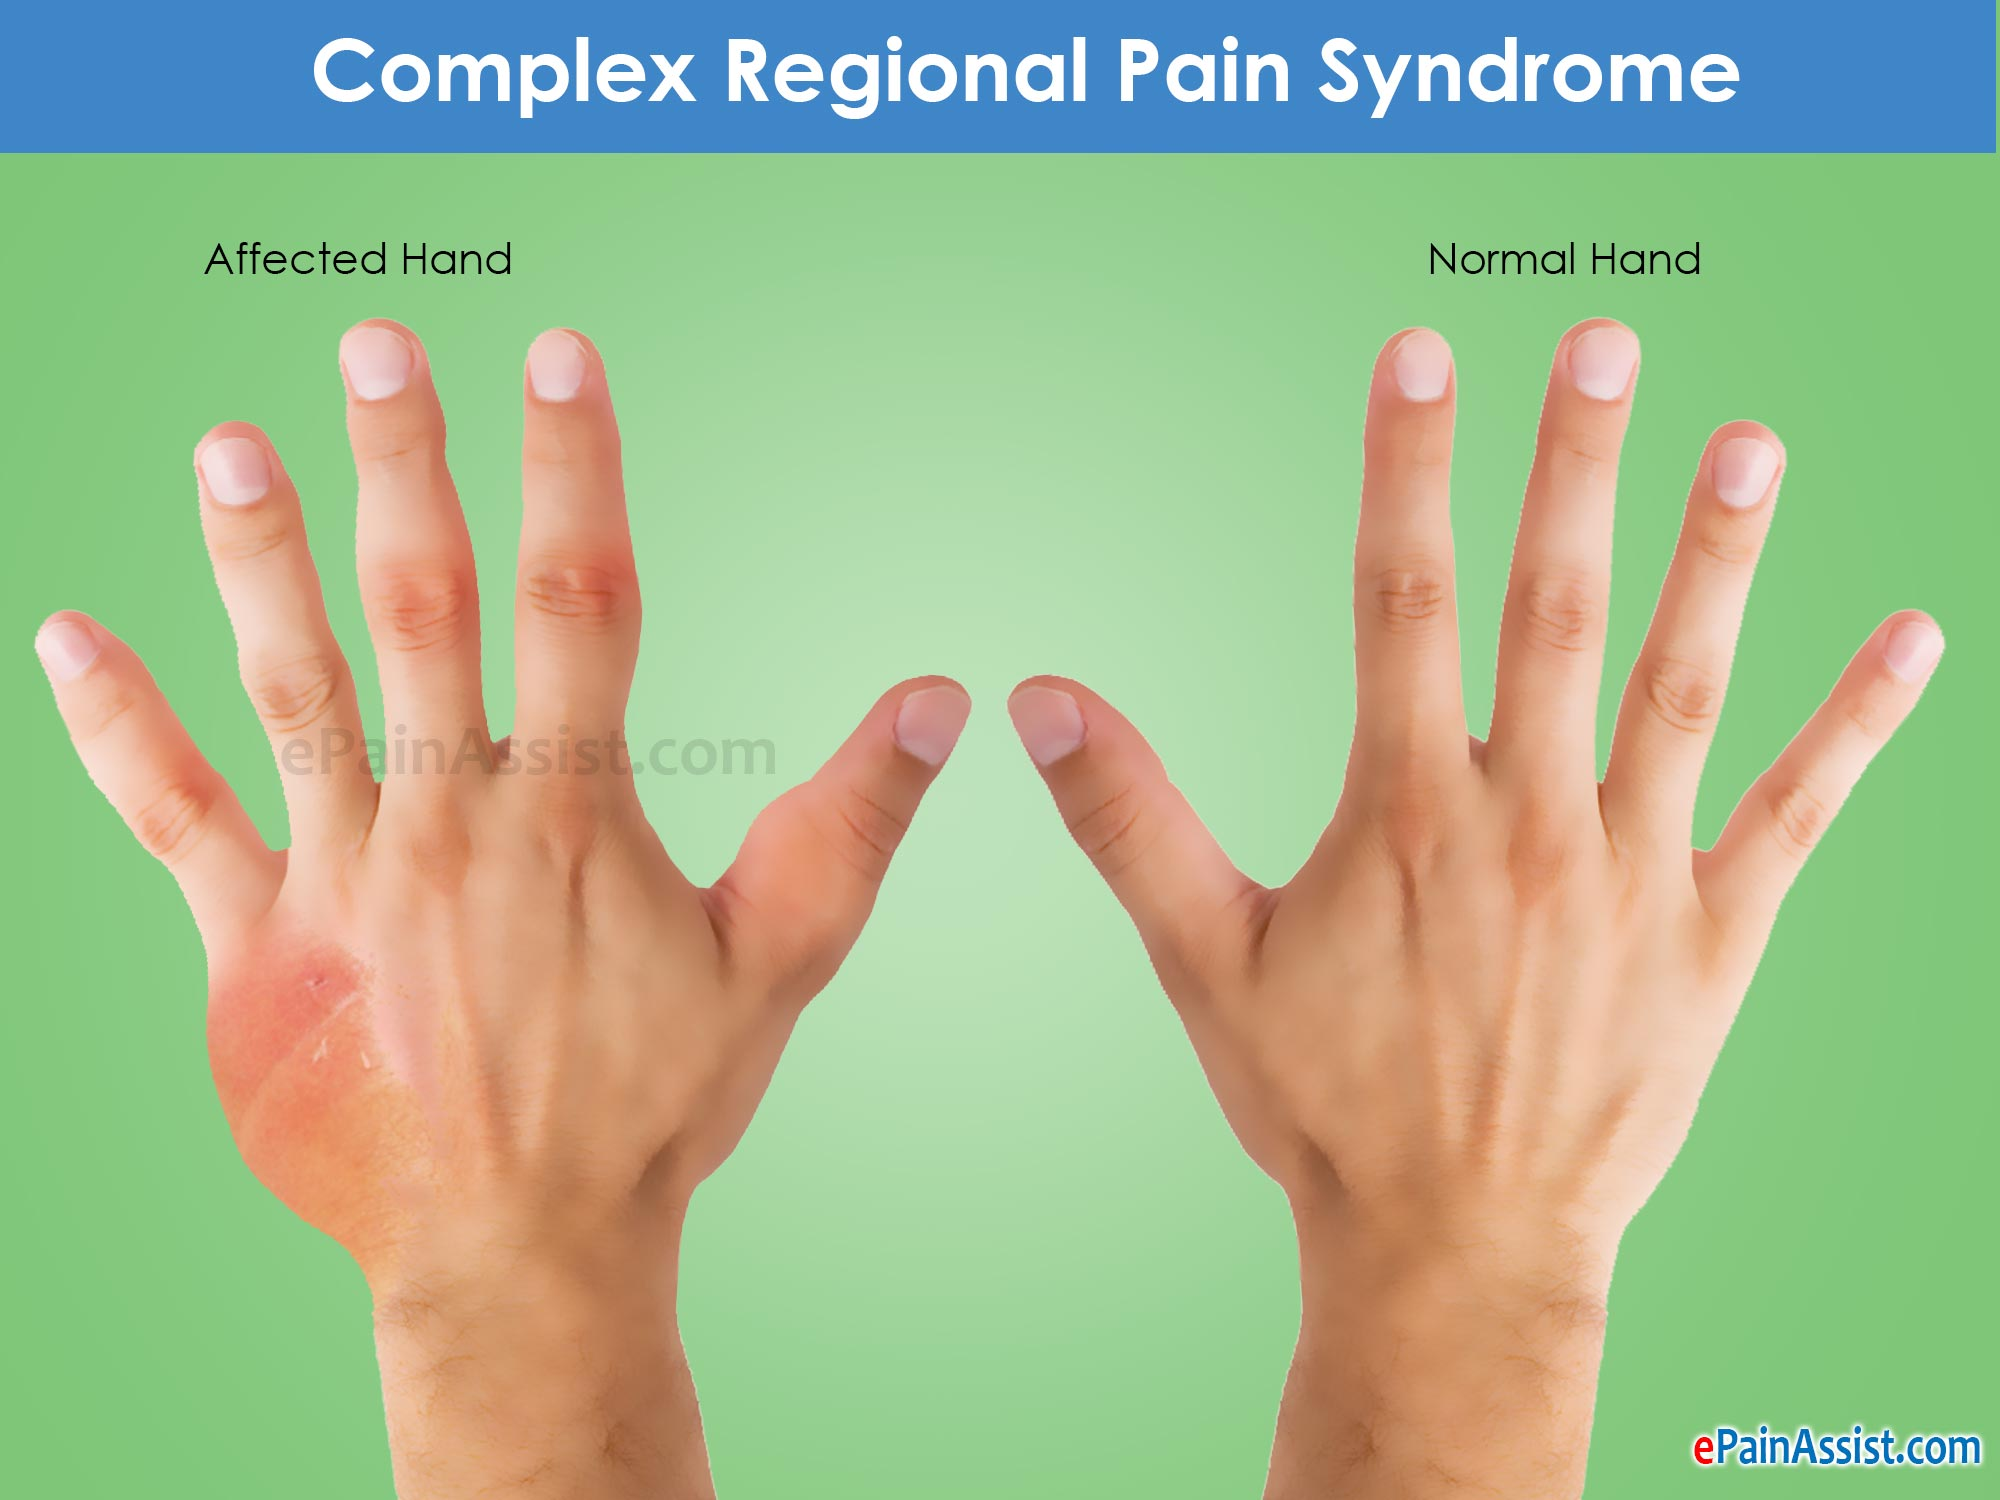 Complex Regional Pain Syndrome